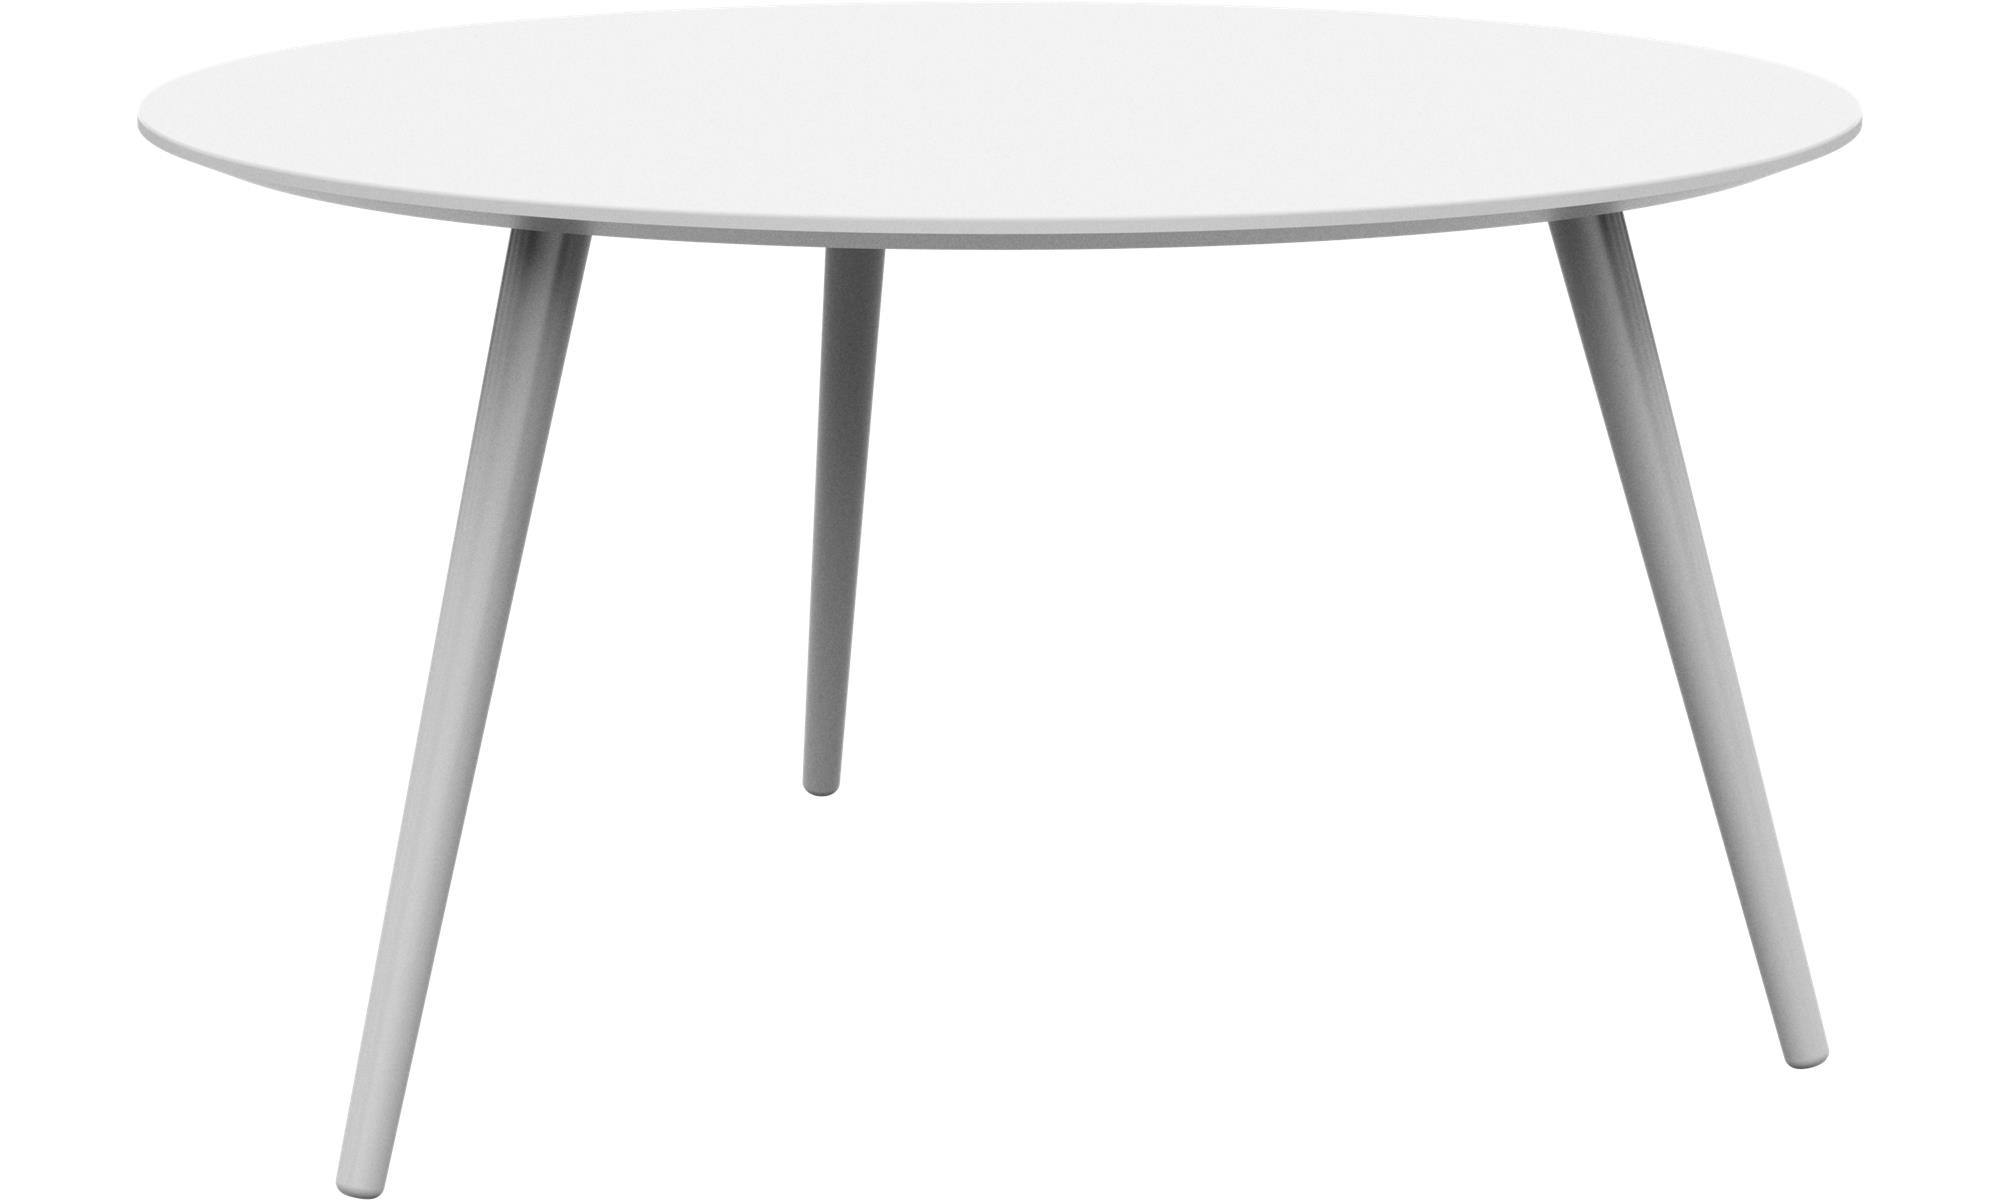 Bornholm coffee table